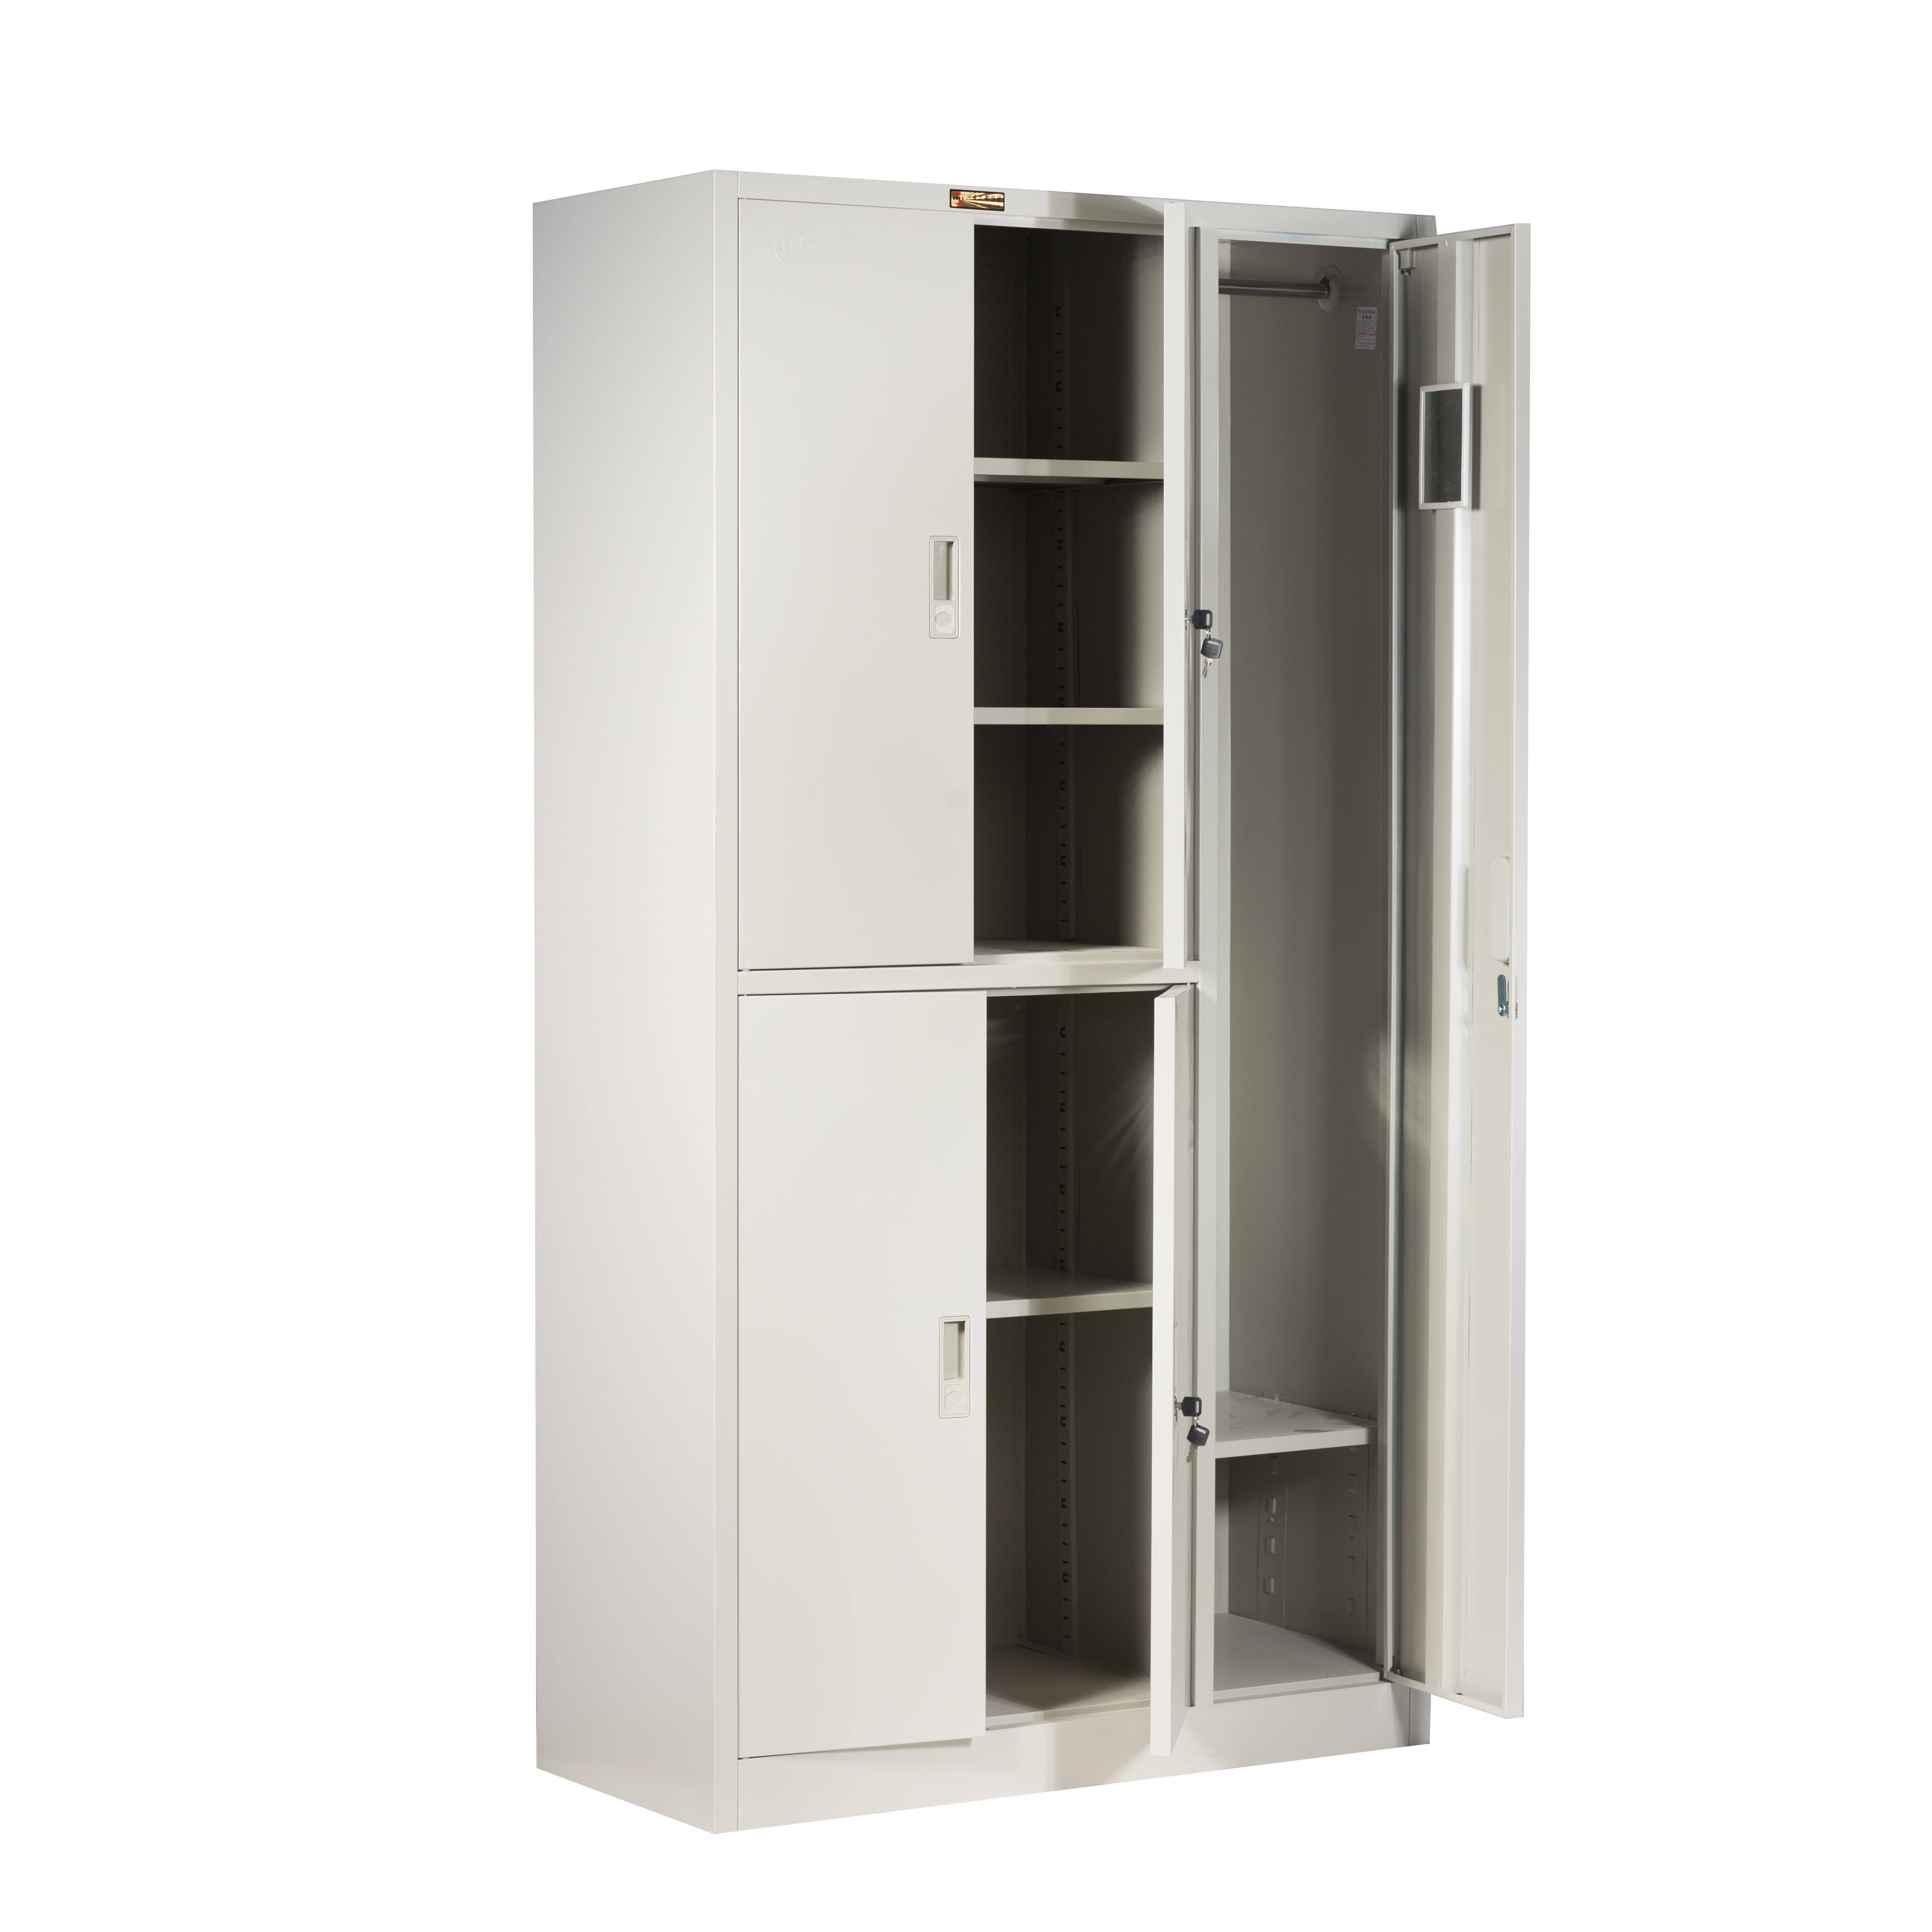 Hot sale clothing cabinets locker steel for office and home usage